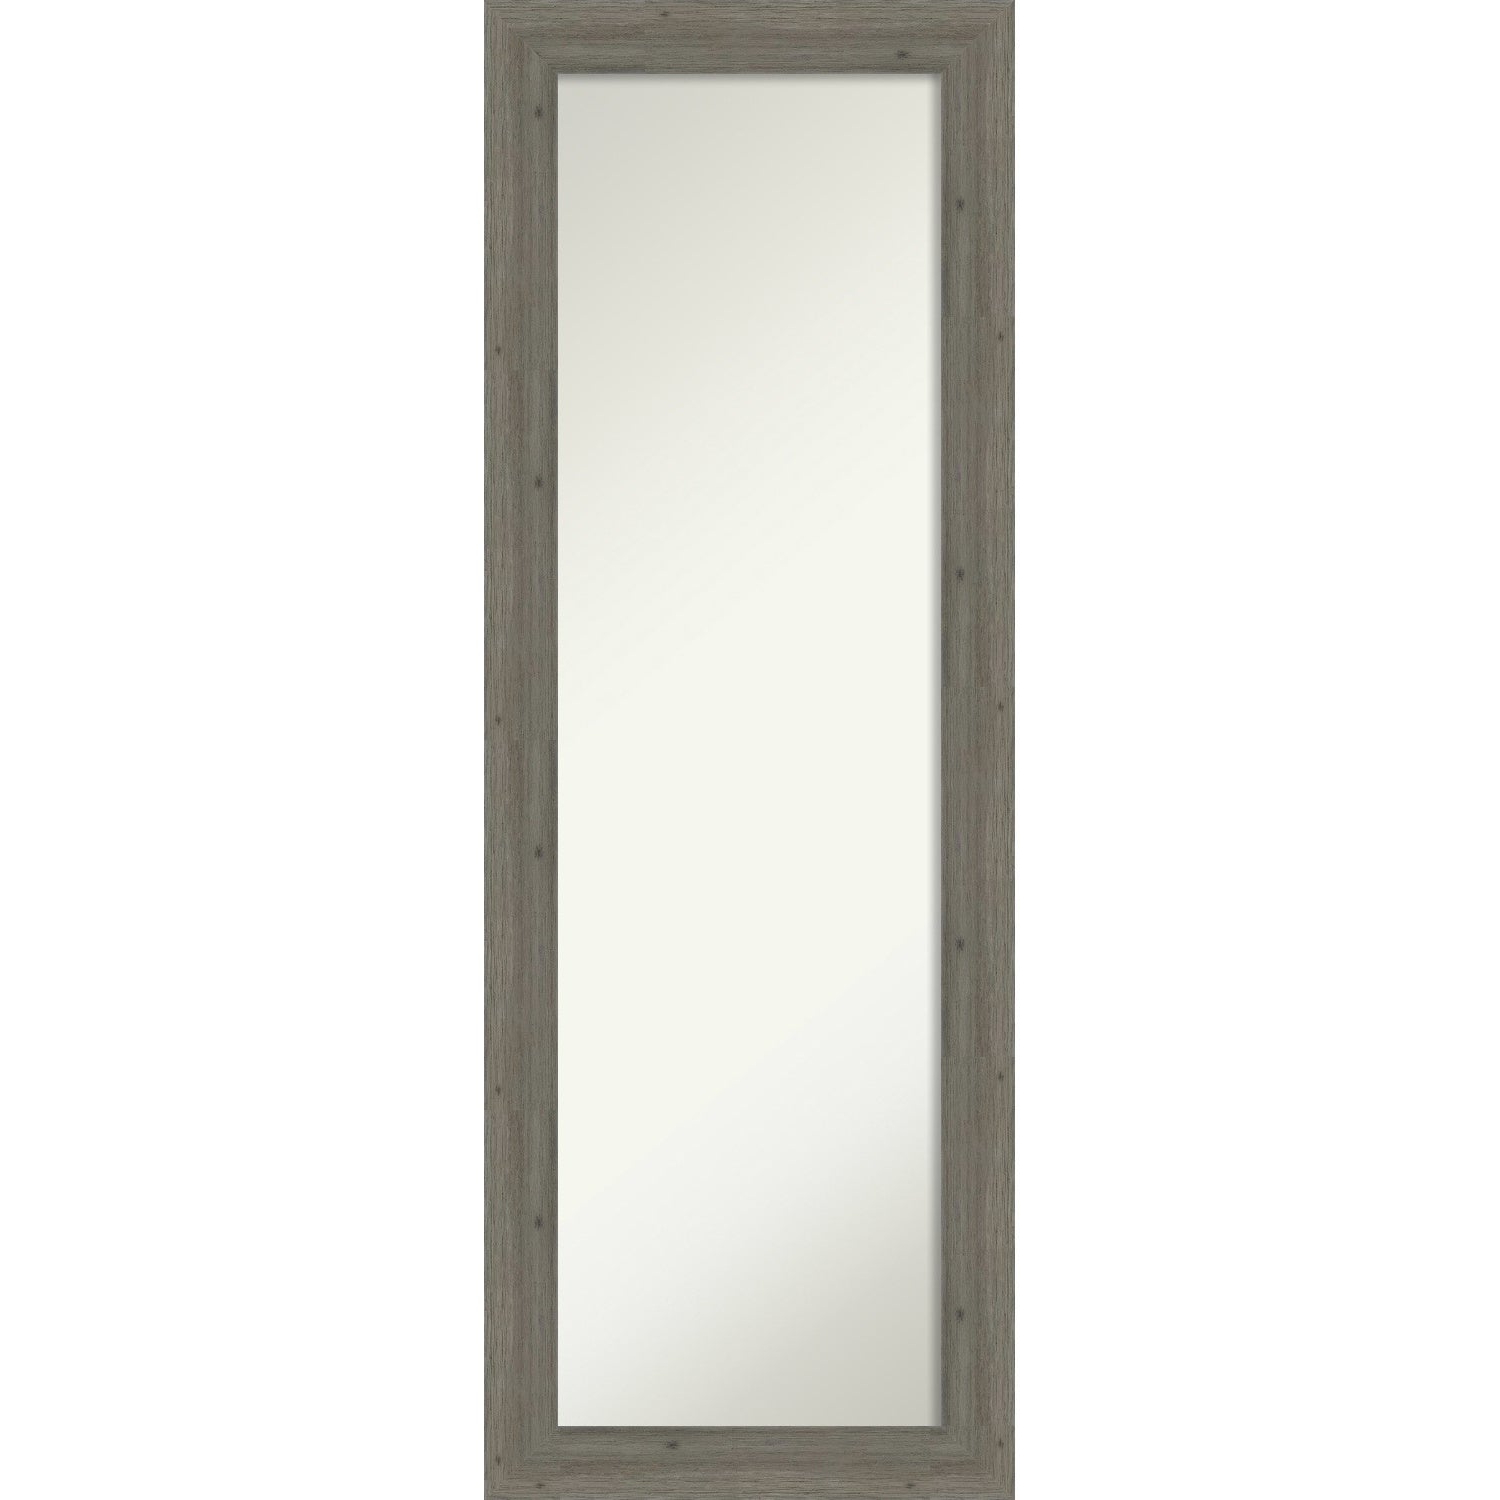 Well Known Full Size Wall Mirrors For On The Door Full Length Wall Mirror, Fencepost Grey Narrow: Outer Size 19 X 53 Inch – 52.62 X 18.62 X (View 8 of 20)